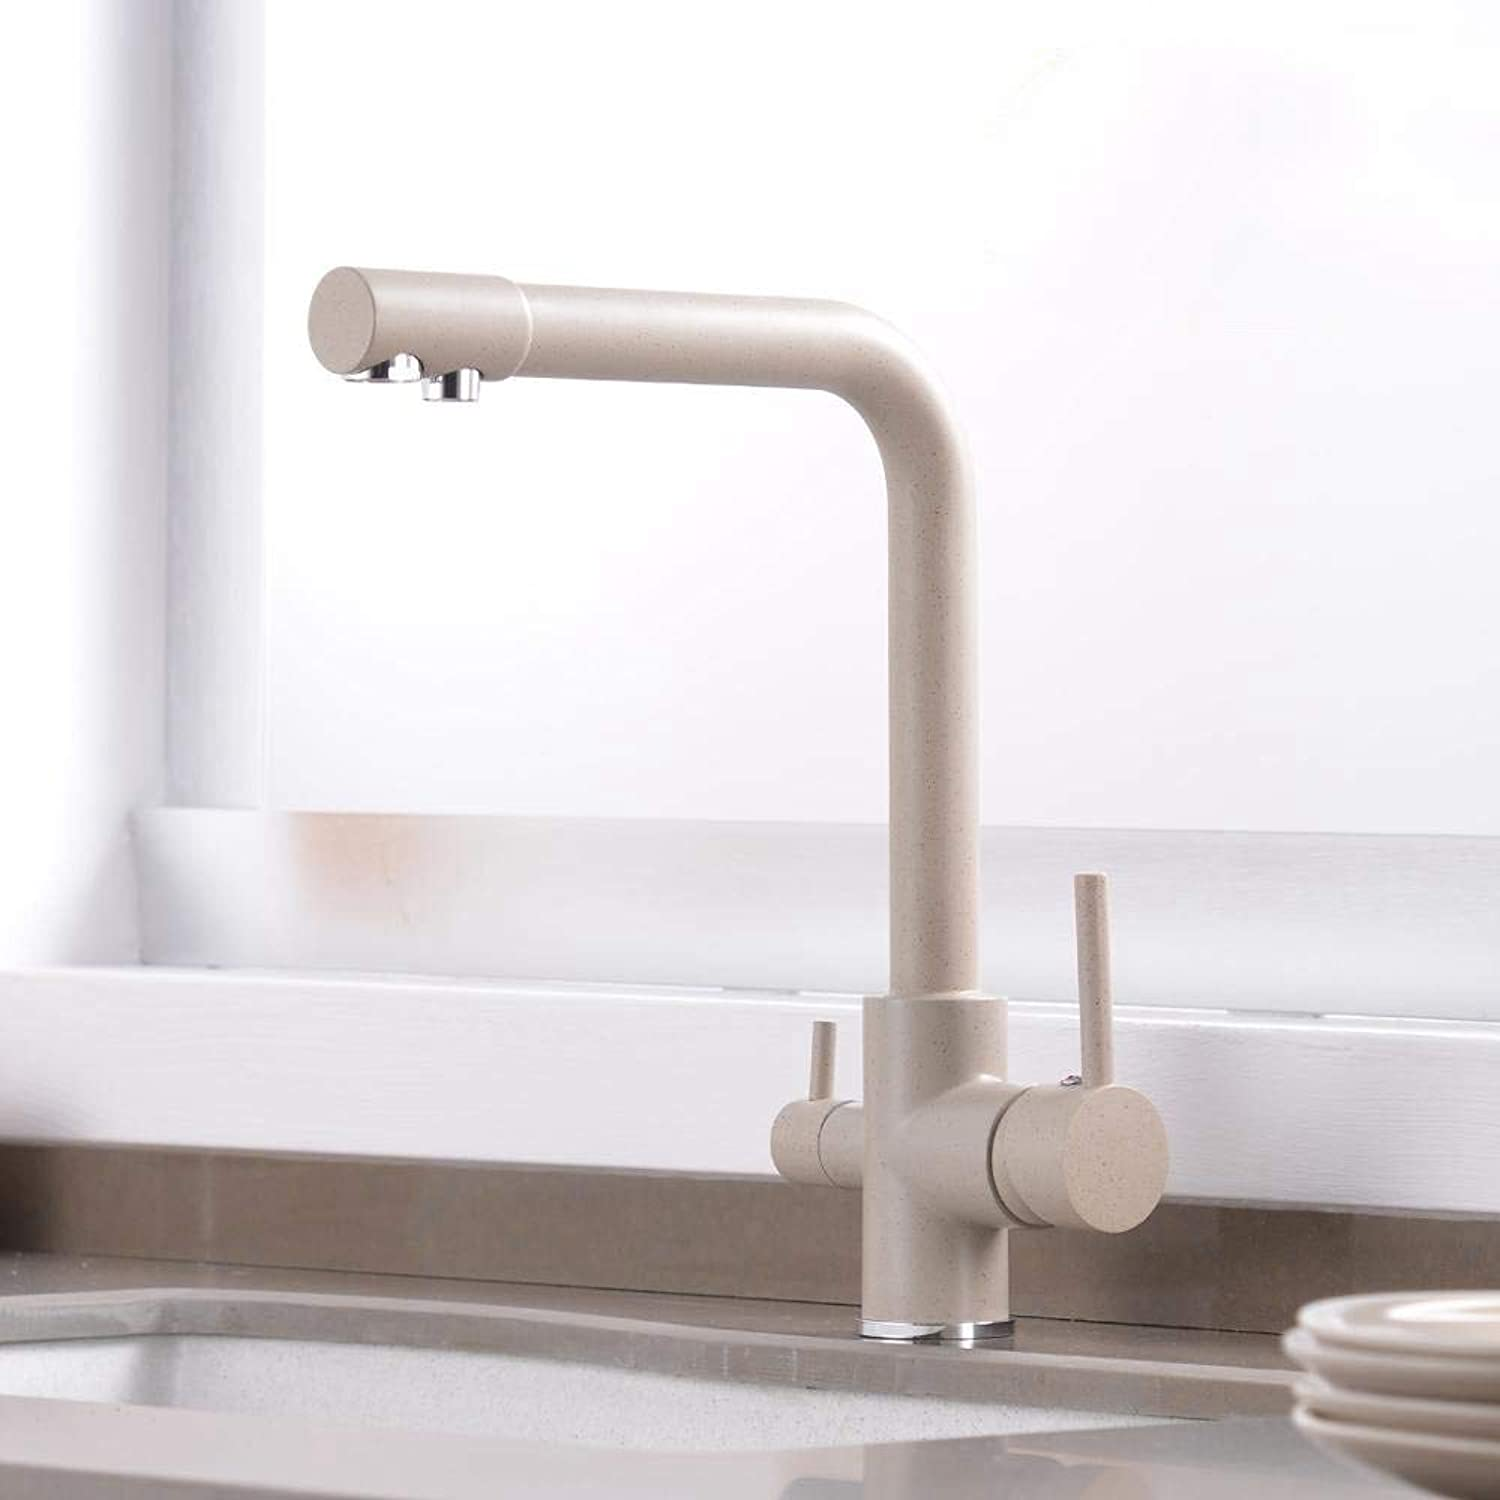 Degree 360 Faucet Kitchen Water Drinking Tap Faucet Sink